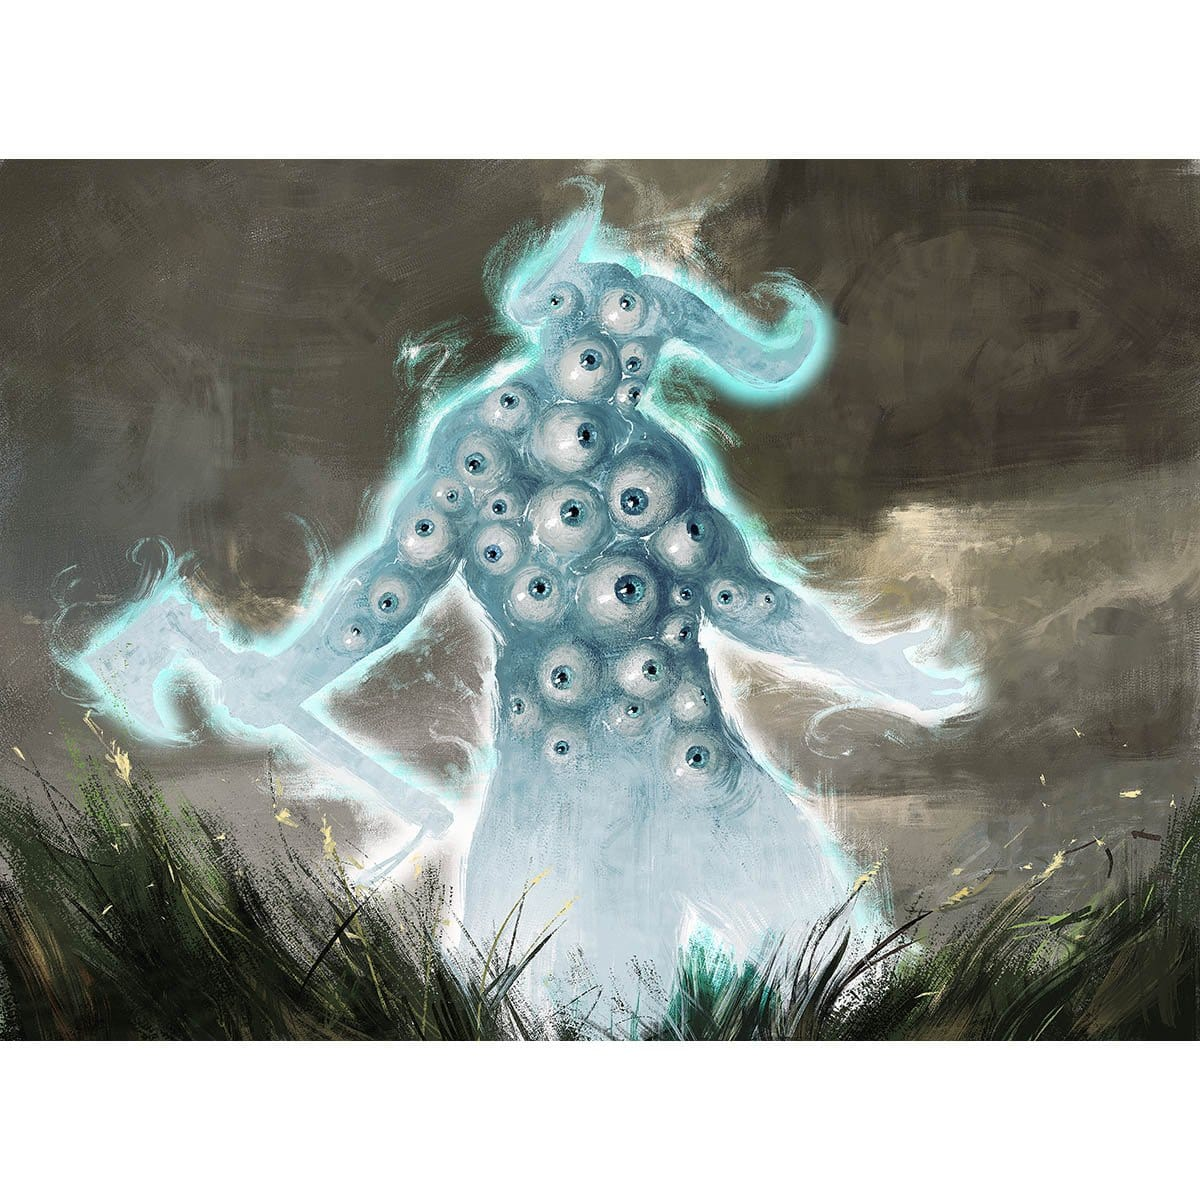 Blink of an Eye Print - Print - Original Magic Art - Accessories for Magic the Gathering and other card games